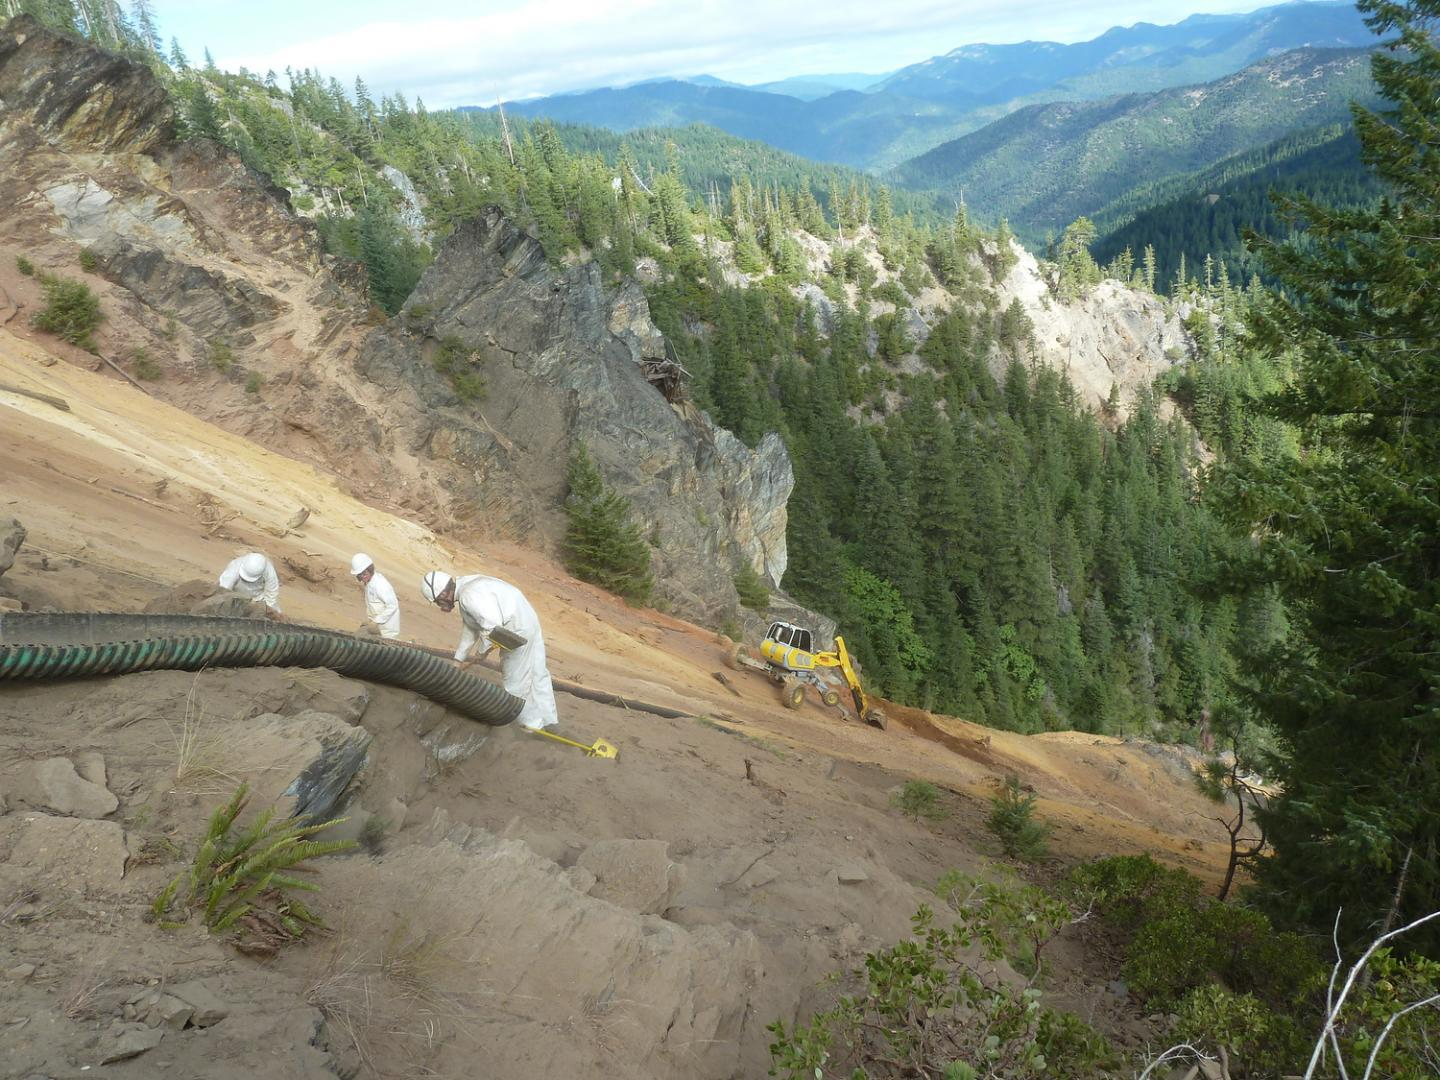 Blue Ledge Mine Remediation - Siskeyou, CA